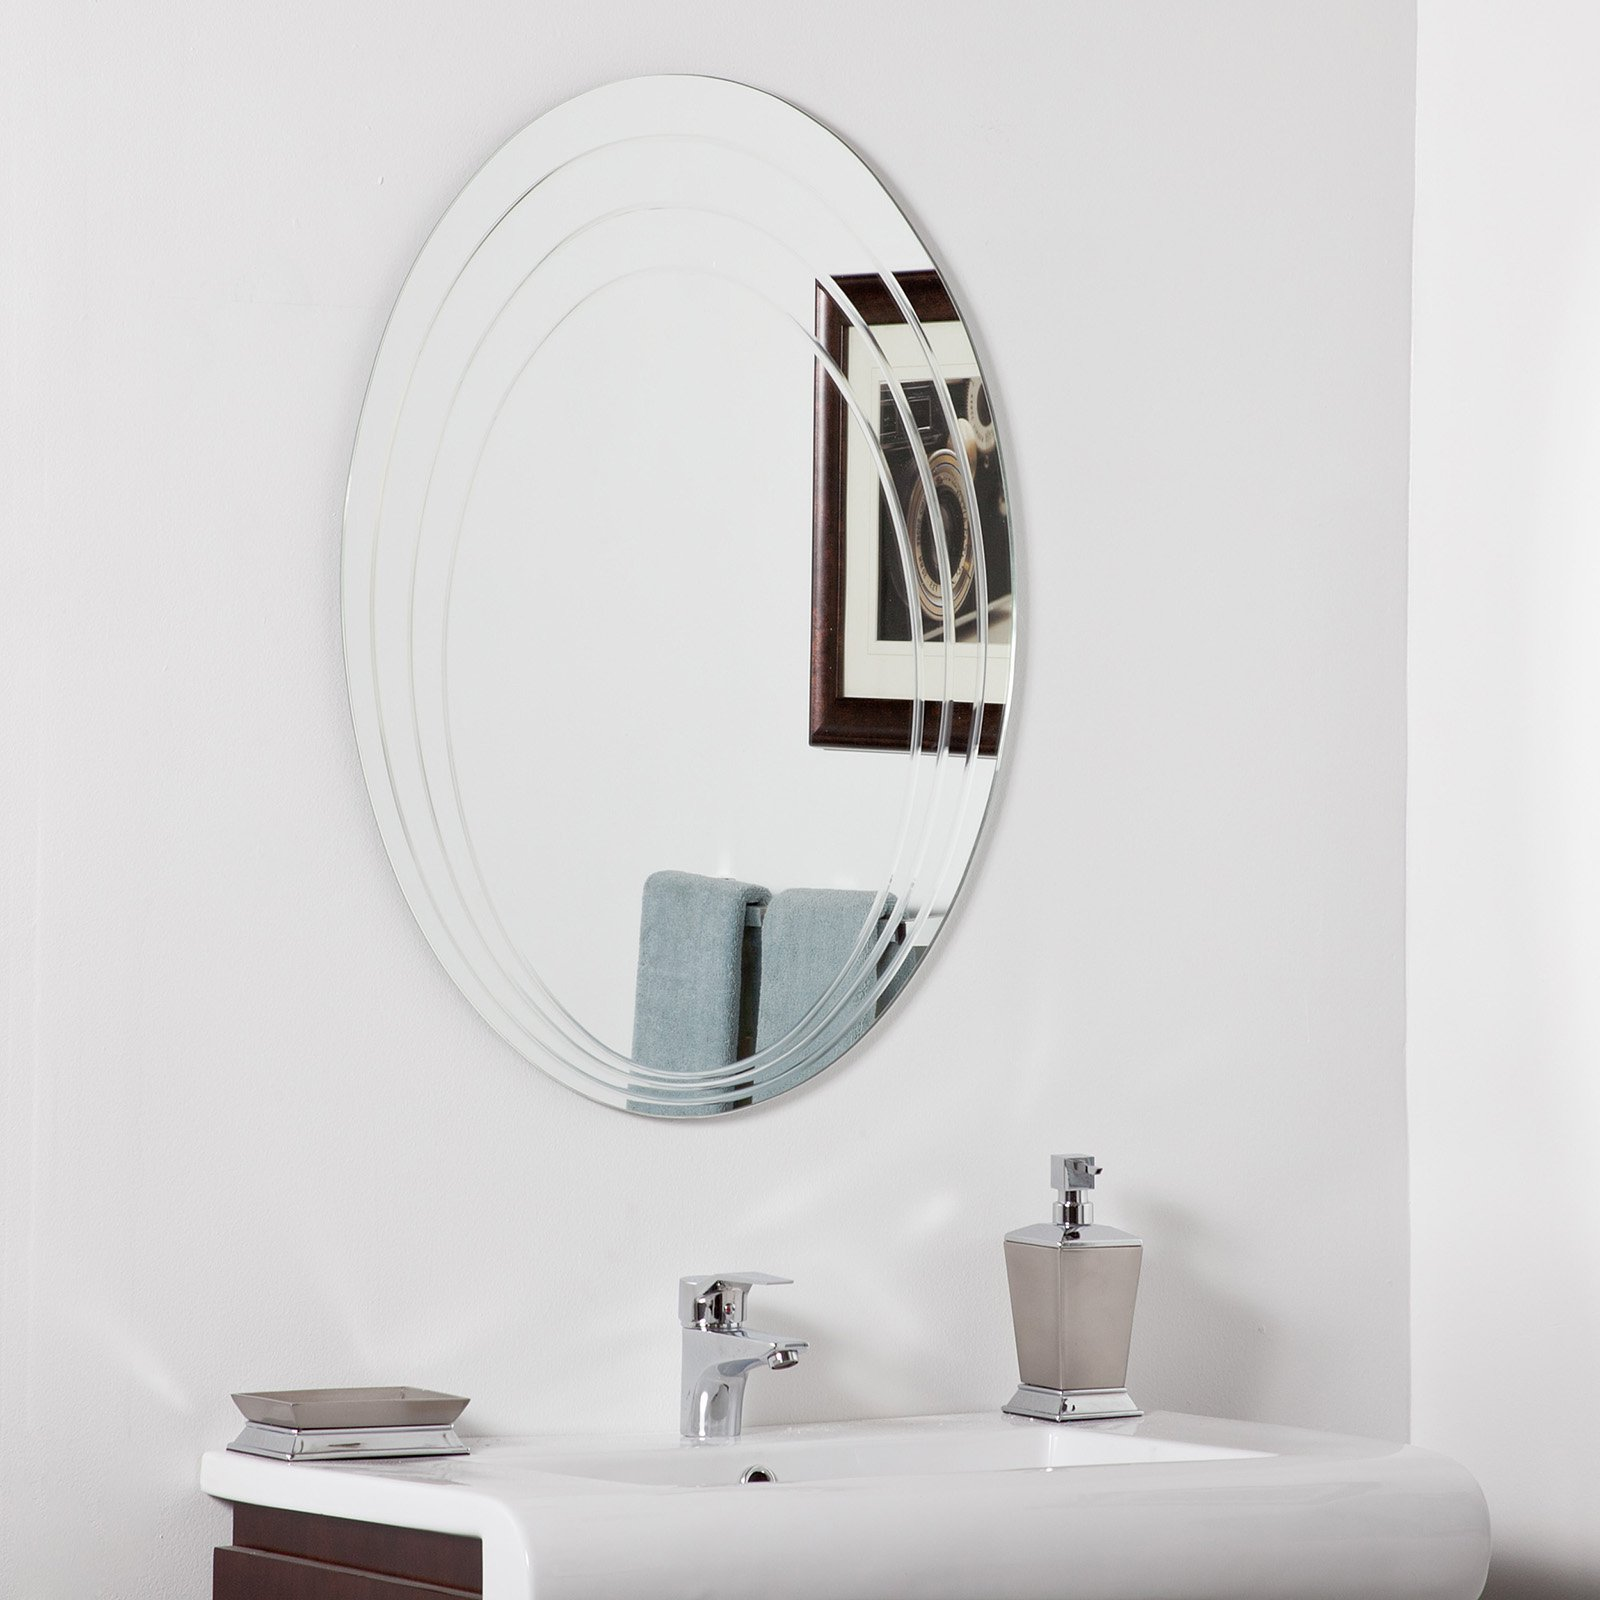 Décor Wonderland Hanna Modern Bathroom Mirror 23.6W x 31.5H in. by Decor Wonderland of US